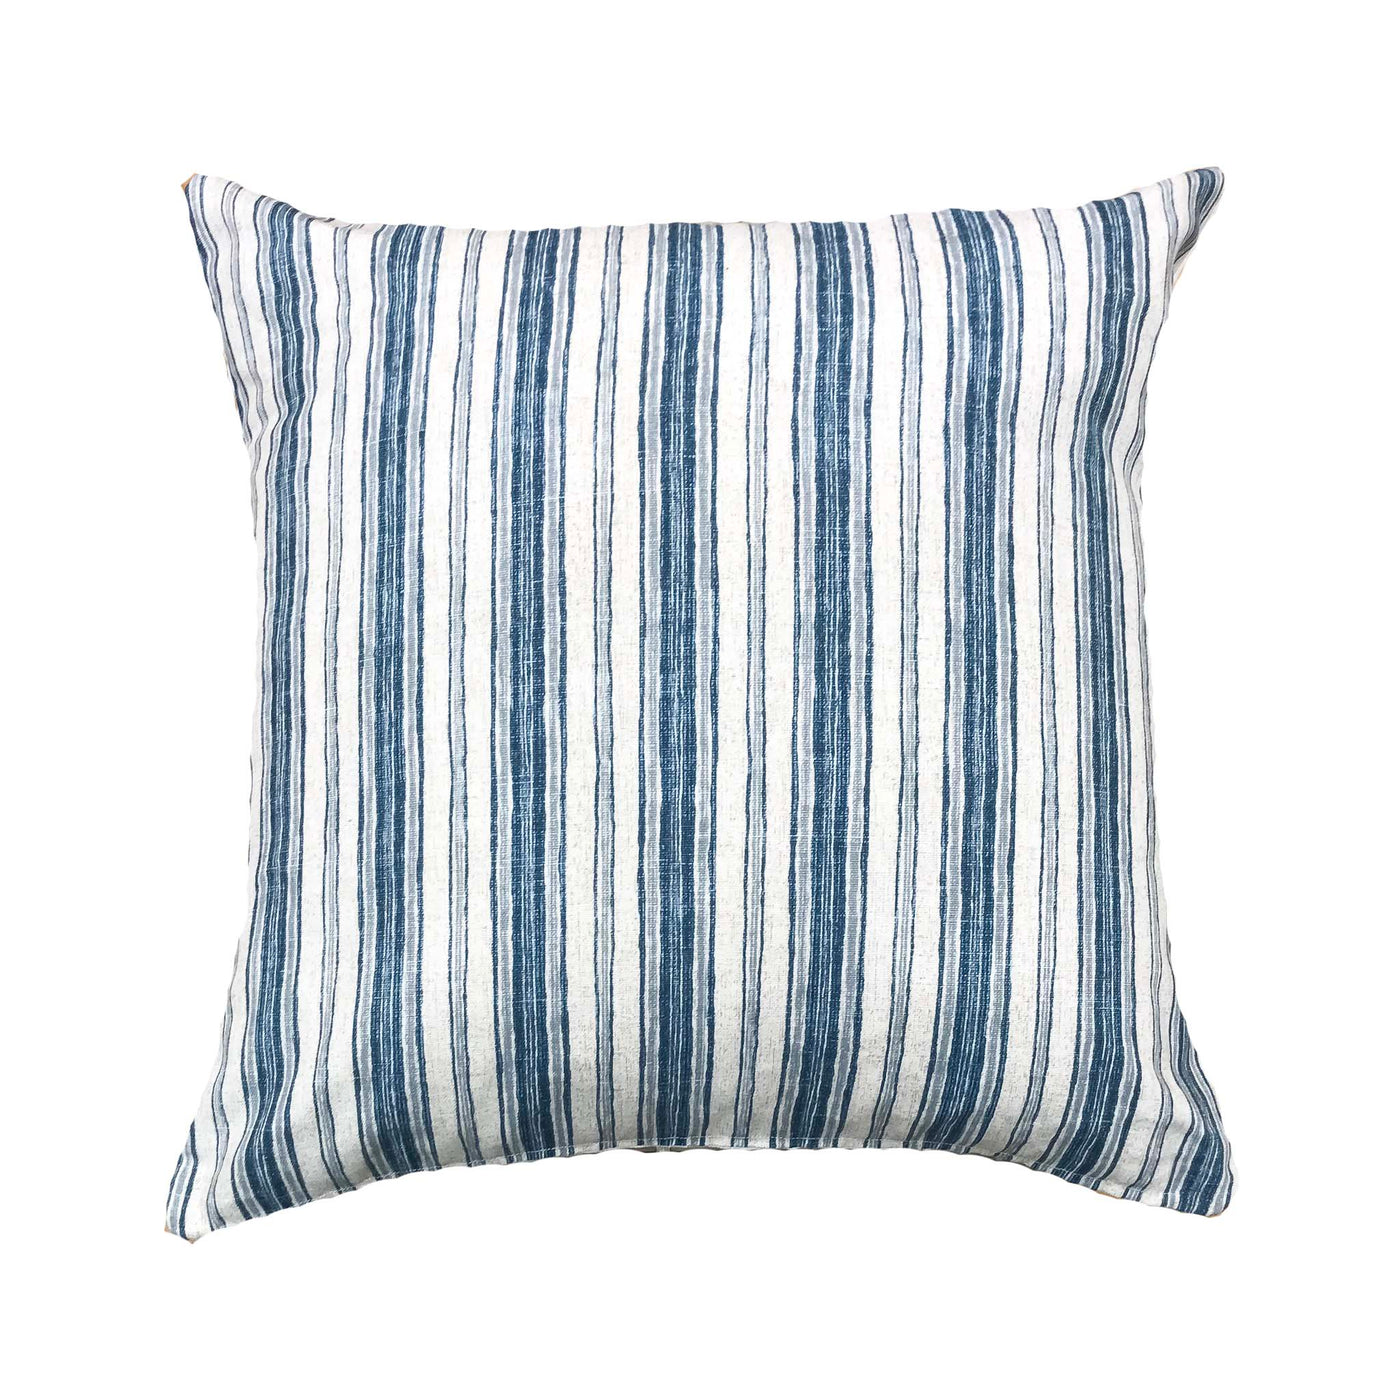 Classic blue stripe pillows - CLARK - Studio Pillows